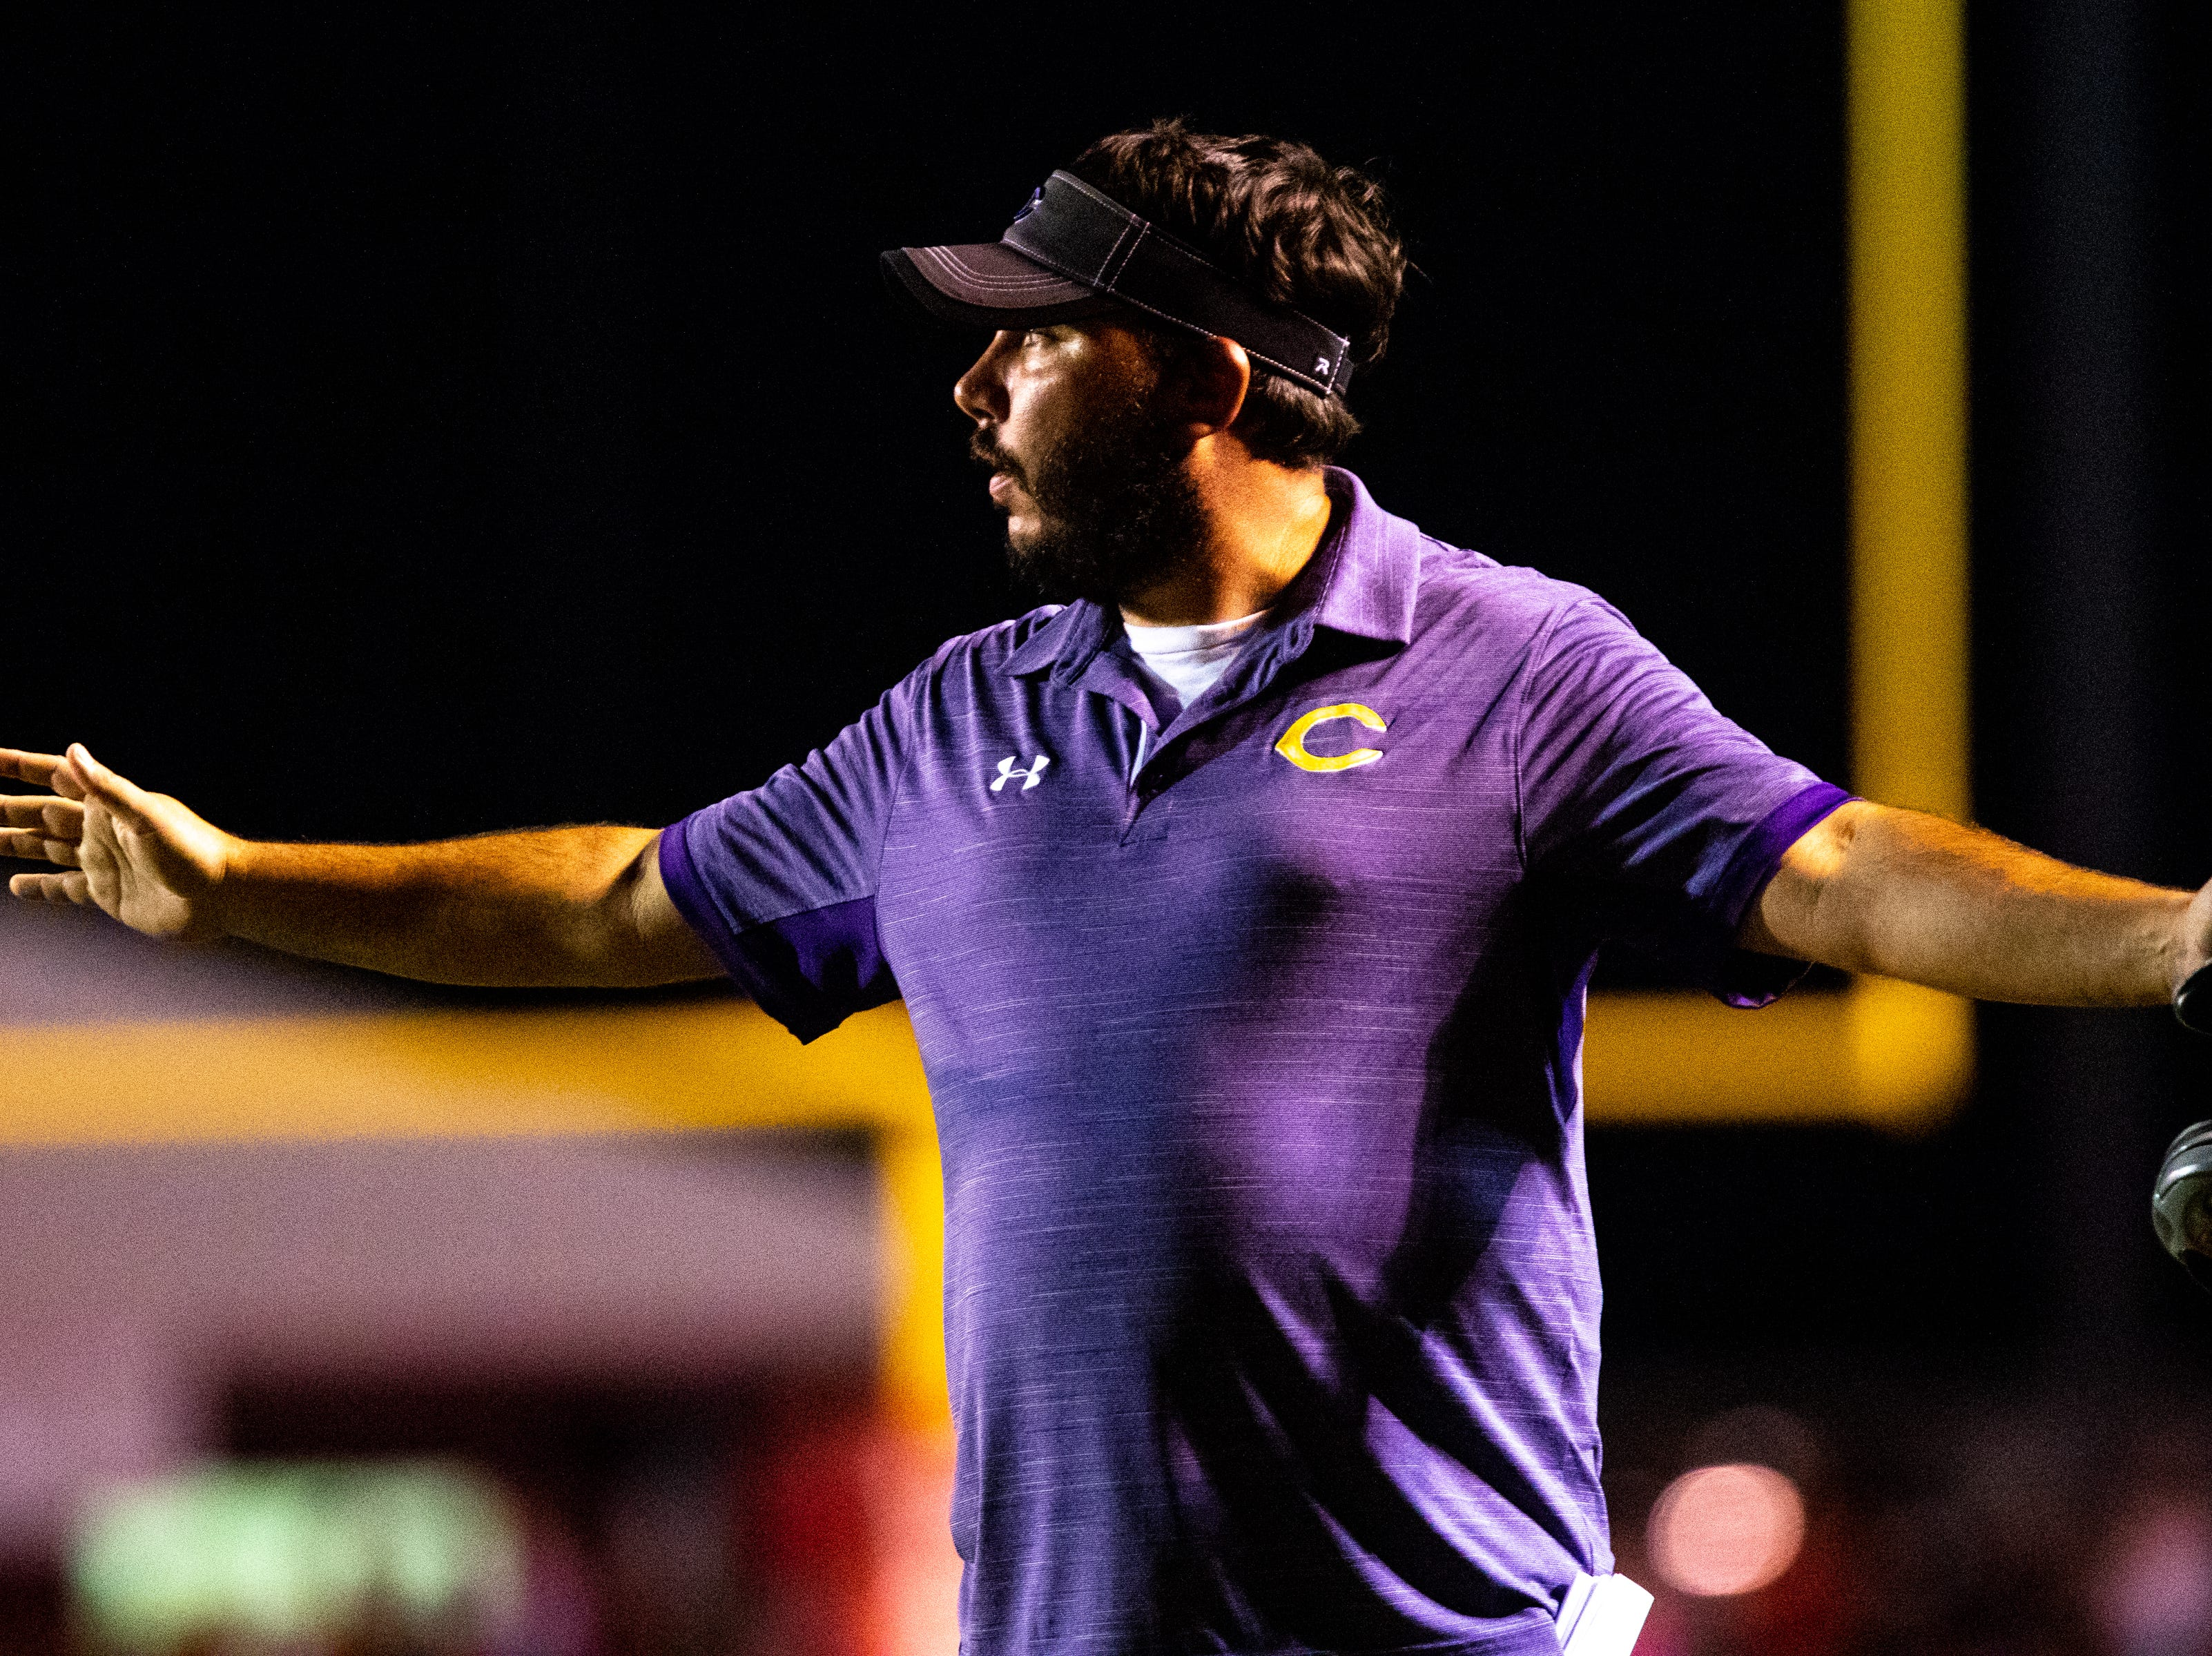 Clarksville High head coach Isaac Shelby watches the game during the second half at Henry County Friday, Sept. 14, 2018, in Paris, Tenn.